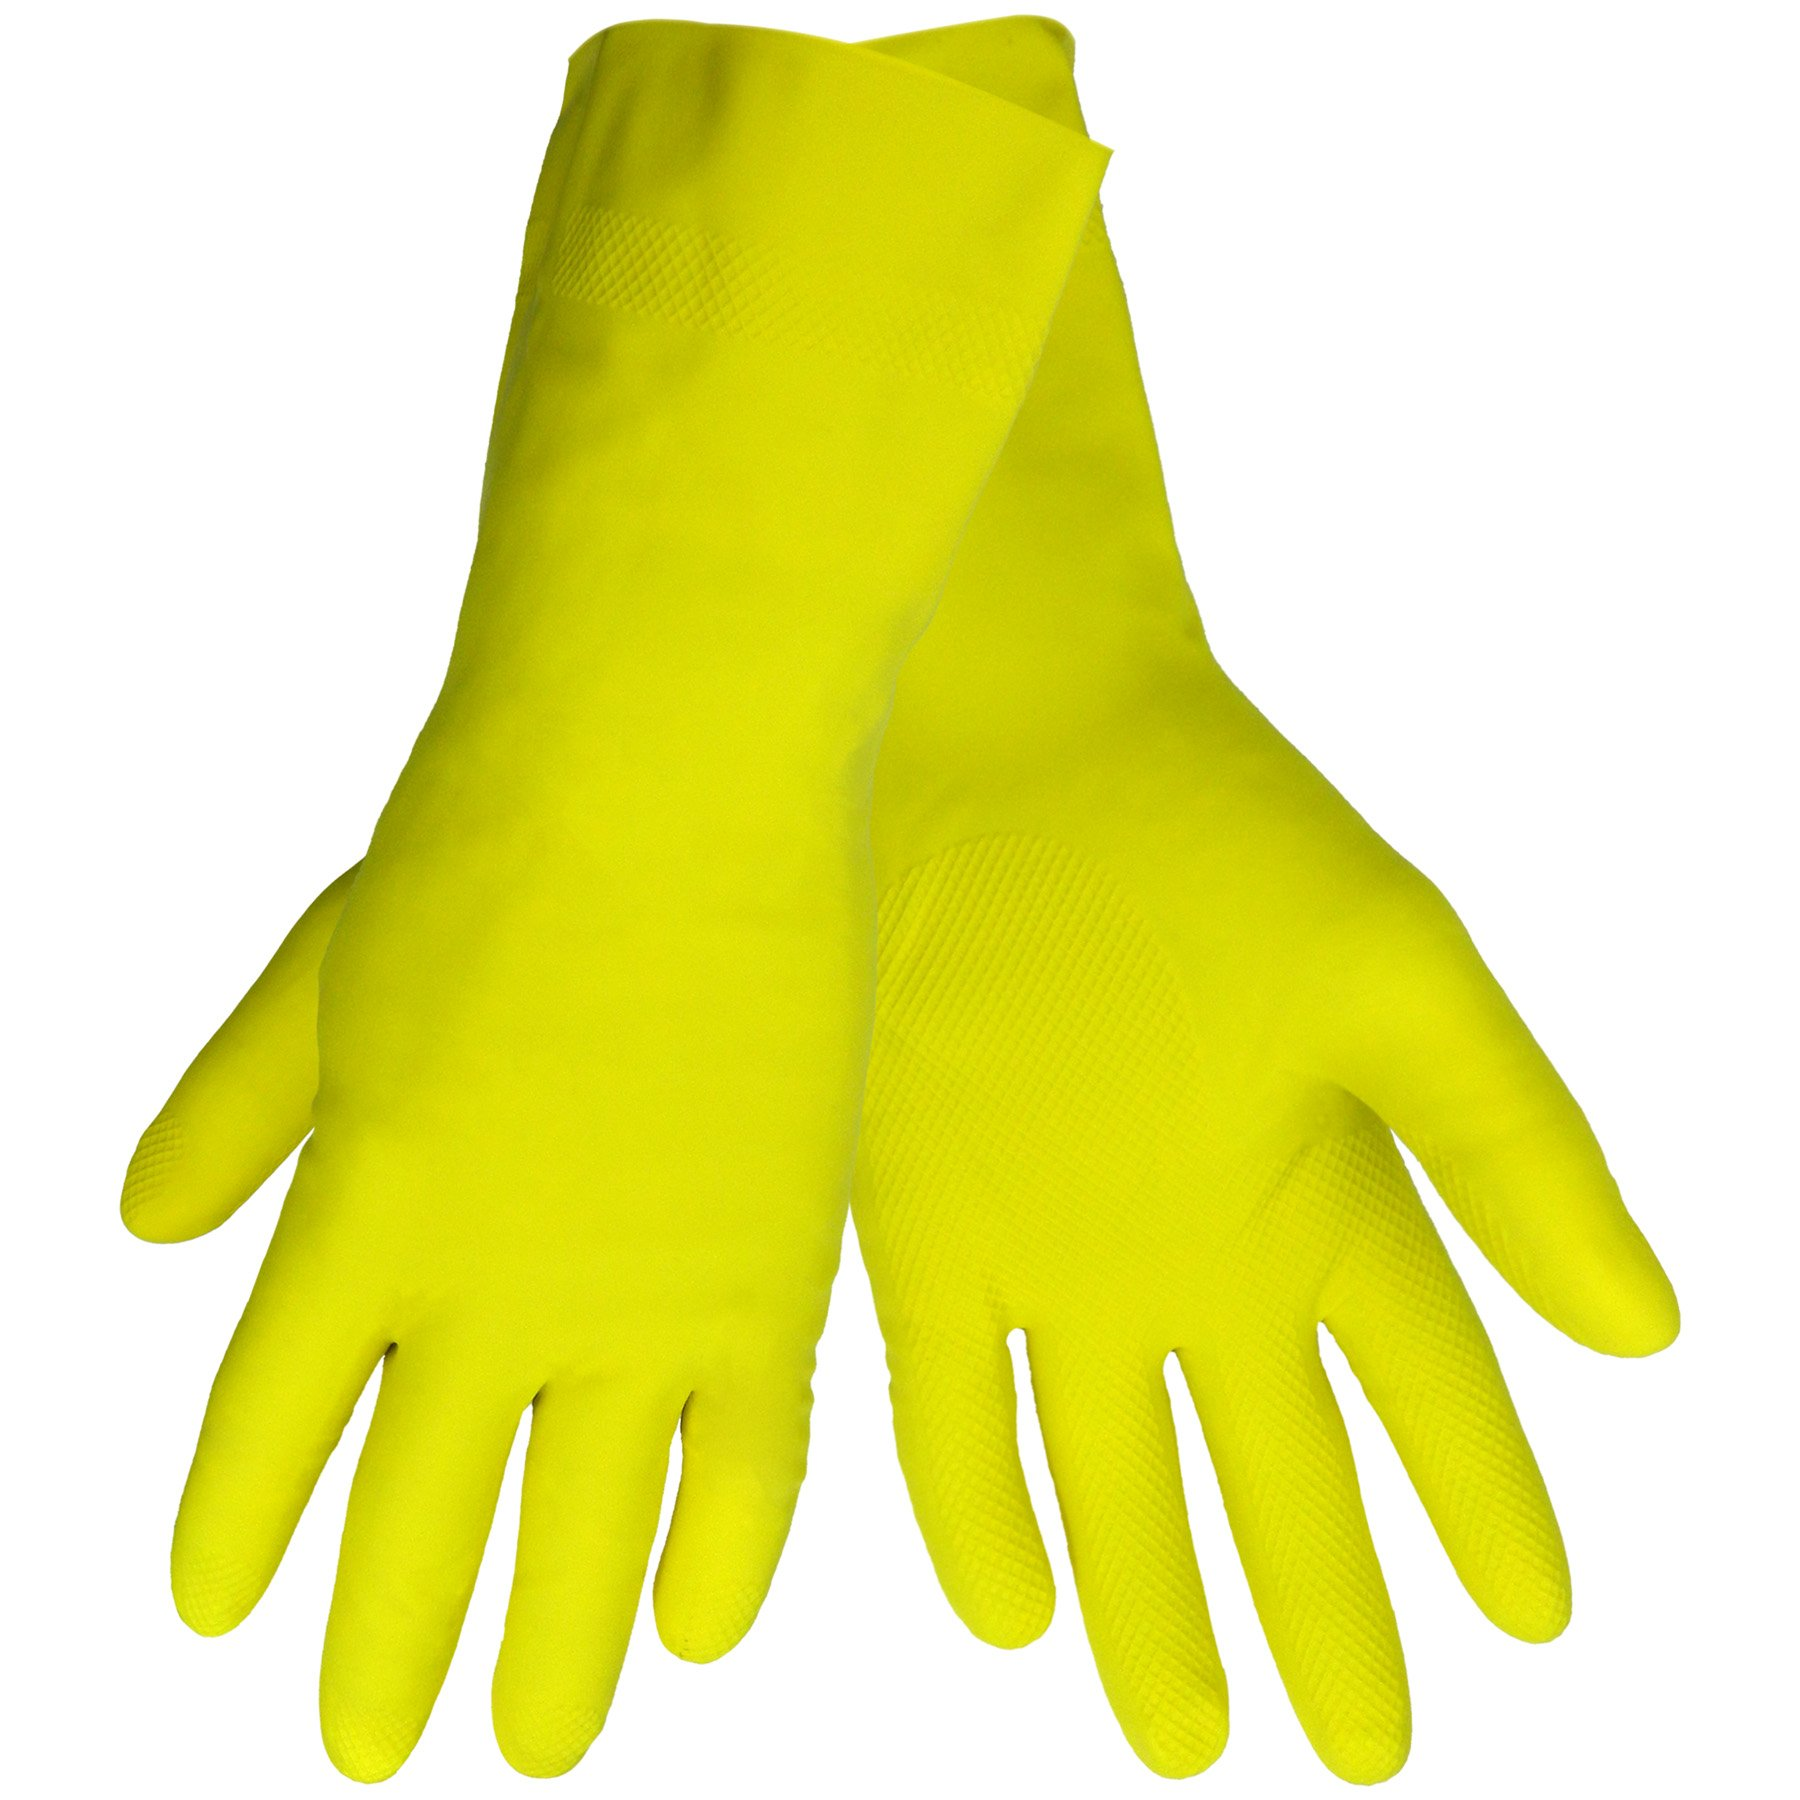 Global Glove 150FE Flock Lined Latex Economy Grade Glove, Chemical Resistant, Large, Yellow (Case of 144)